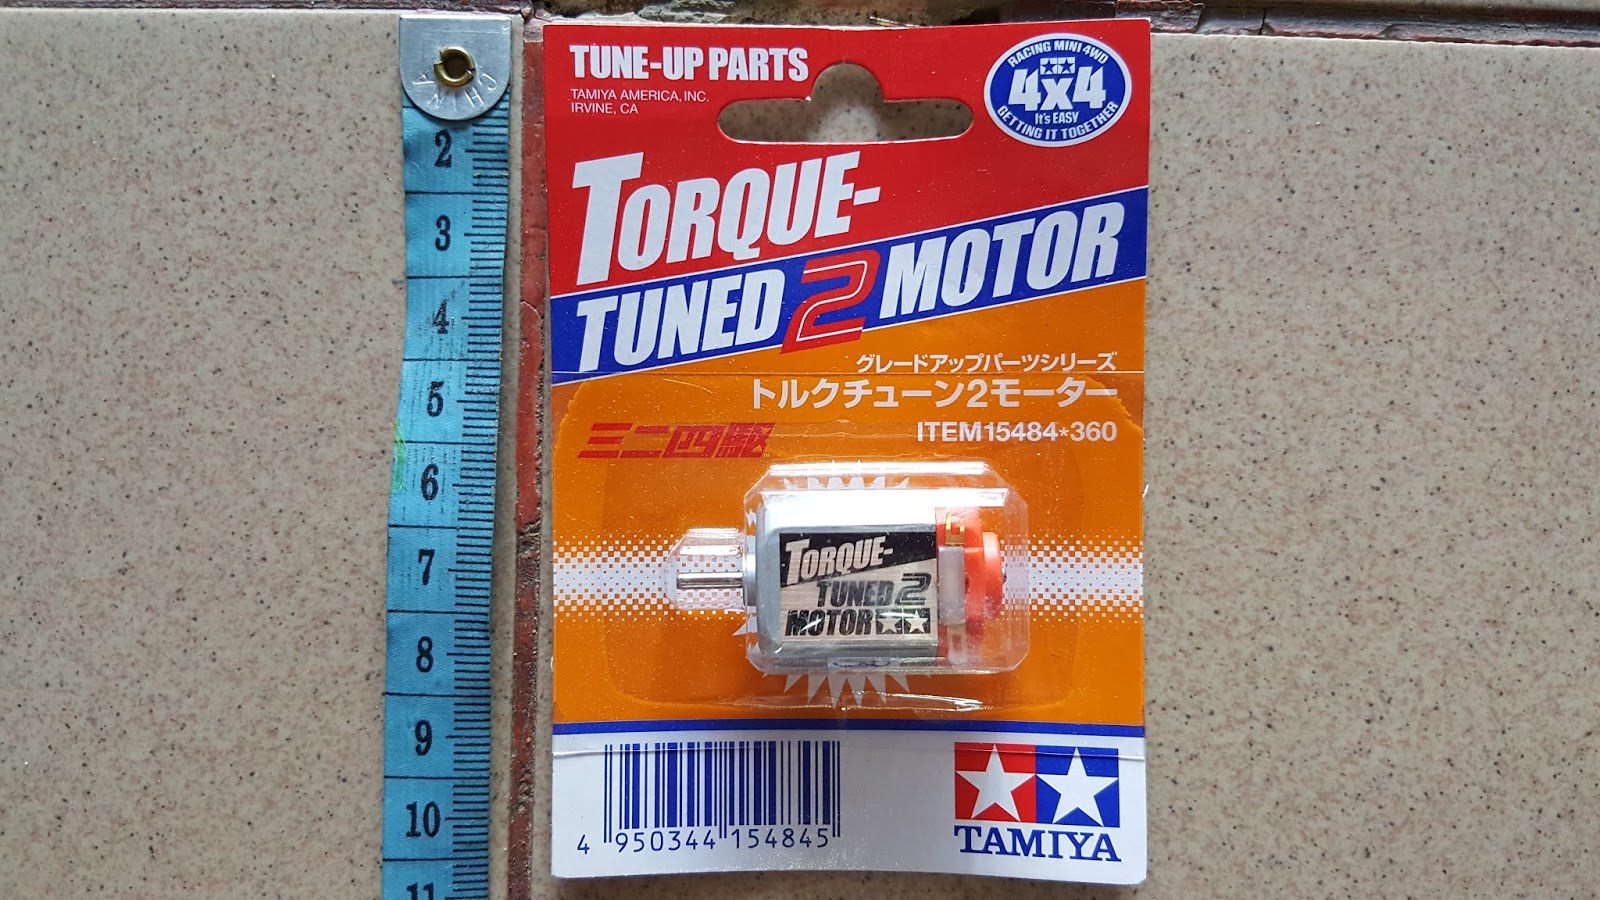 Tamiya Mini 4wd 15484 Torque Tuned 2 Motor Spec Dan Daftar Harga 15455 Light Dash Dinamo Spare Parts Kode